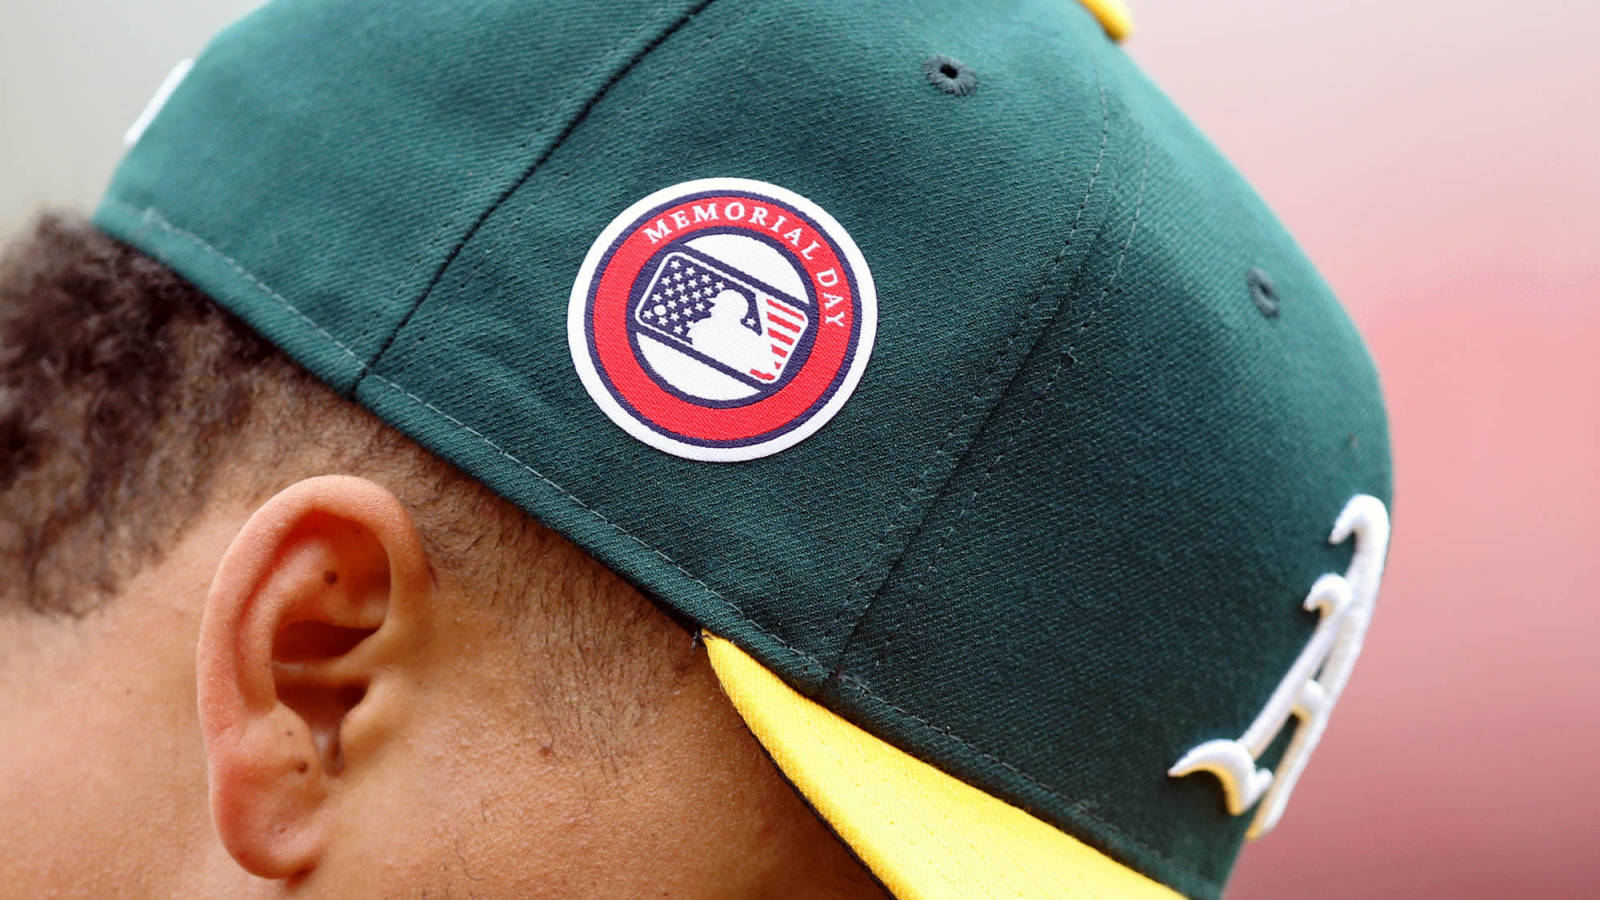 Report: A's front office 'tremendously disappointed' in ownership